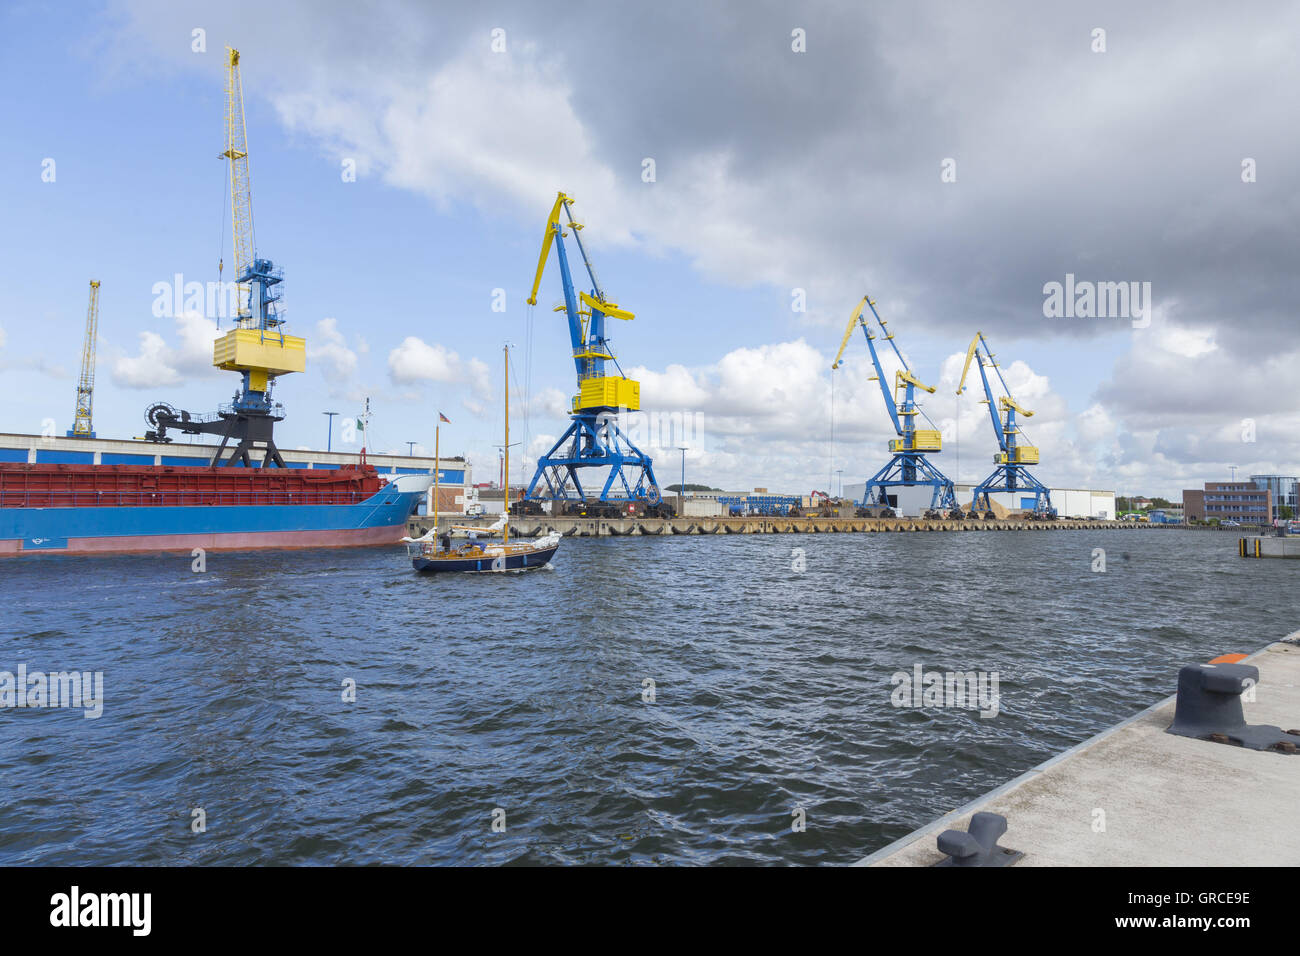 Two Master In Front Of A General Cargo Vessel In The Port Of Wismar Mecklenburg-Vorpommern - Stock Image